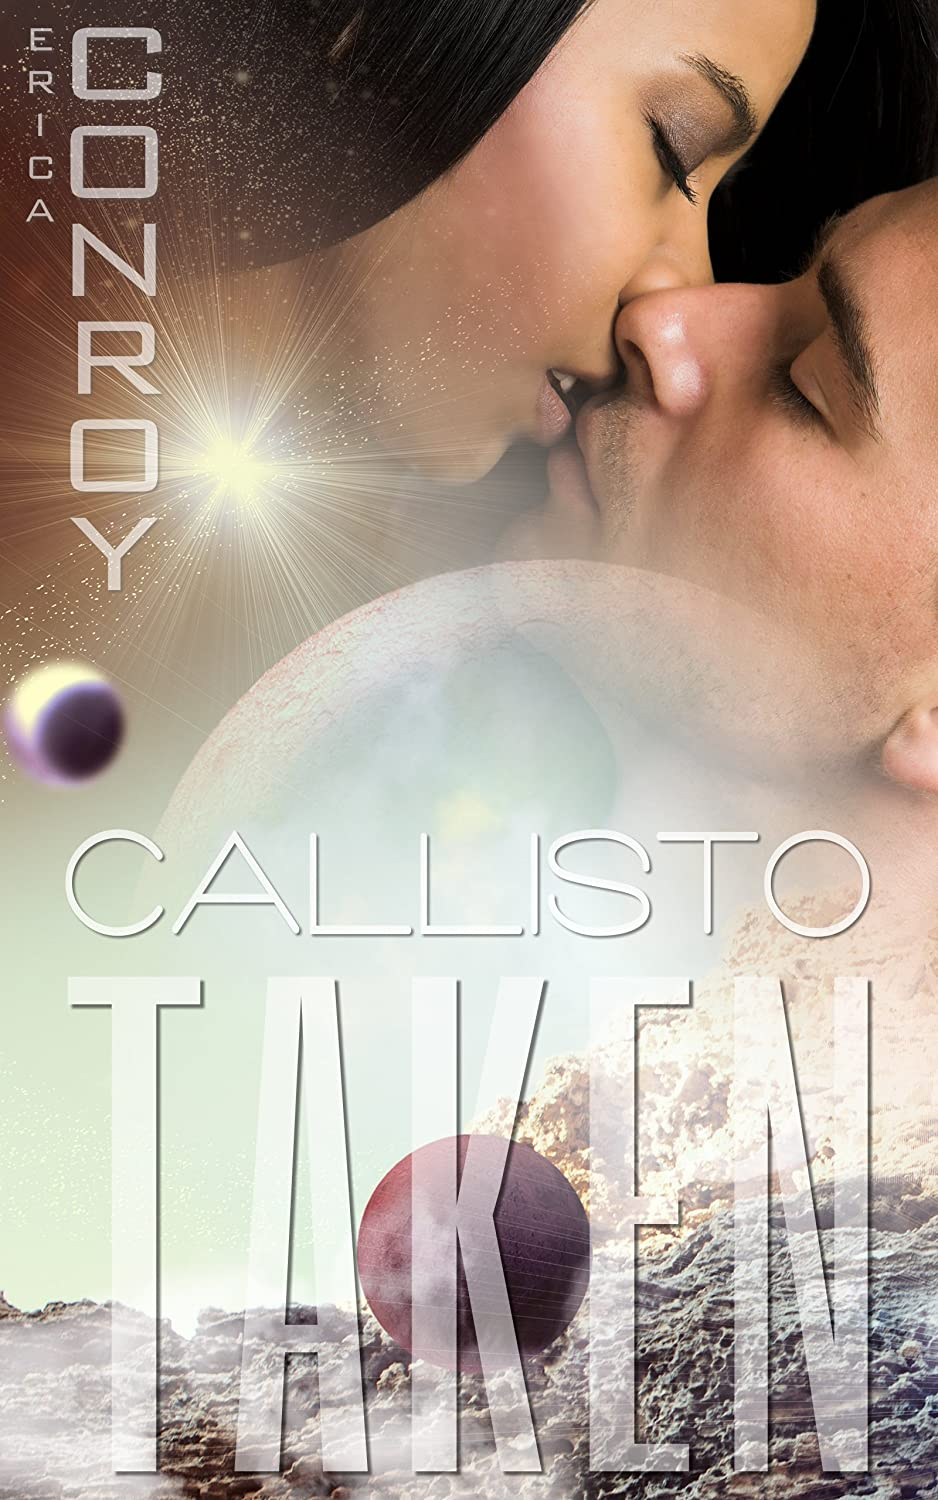 Taken (Callisto Series - Book 1) by Erica Conroy